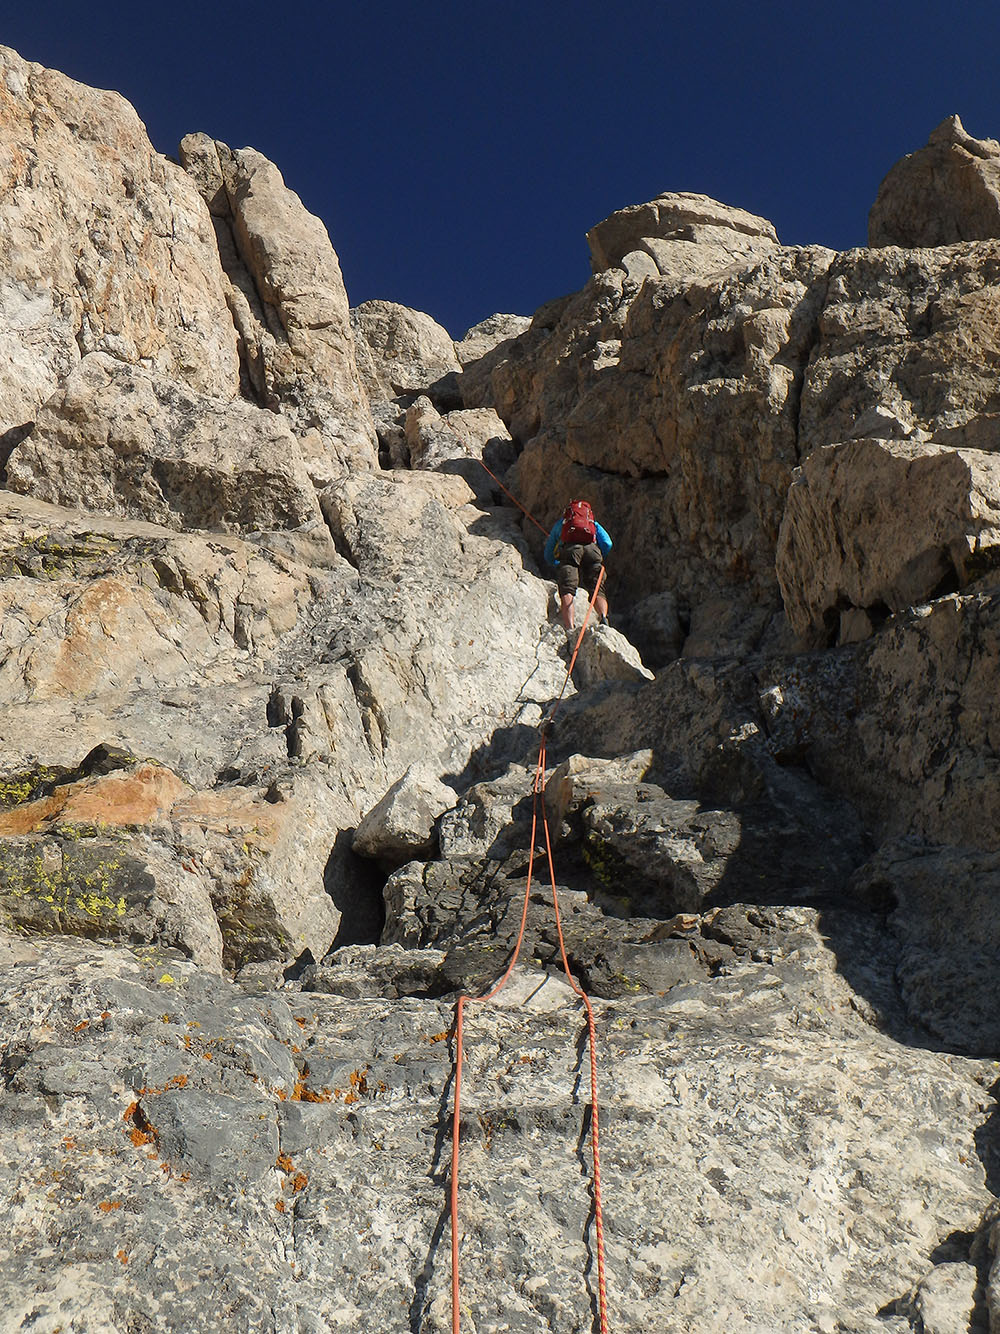 Chris on the first rappel from the Grand Teton in Wyoming